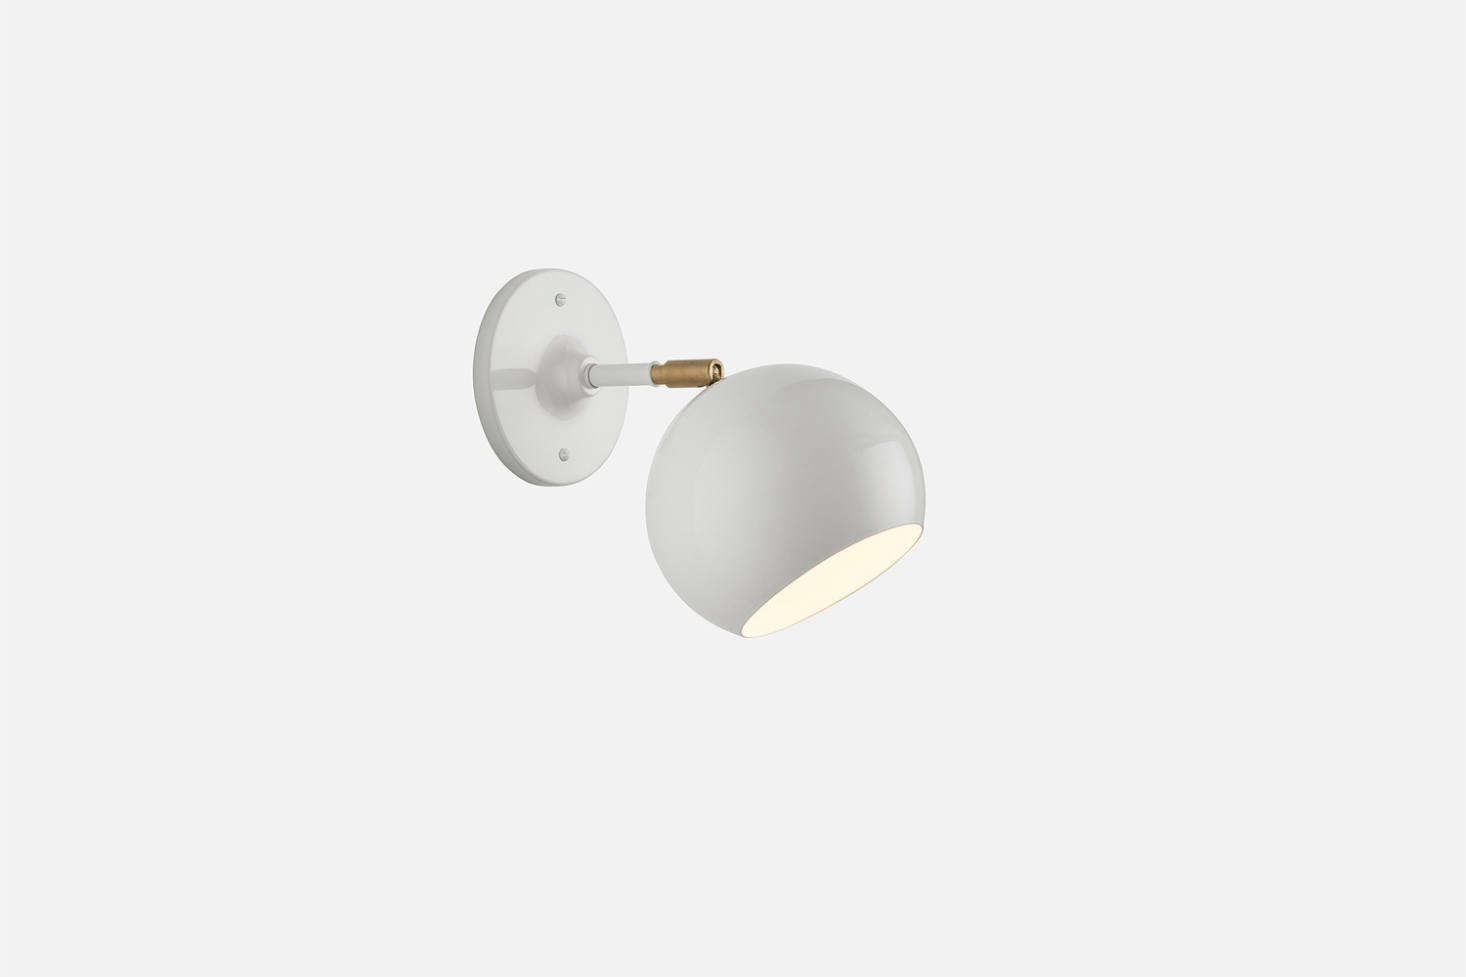 TheIsaac Sconce with a short arm is inspired by midcentury Scandinavian lighting and available in black, white, and Persimmon; $139 at Schoolhouse. It's also available as aPlug-In Sconce; $189.